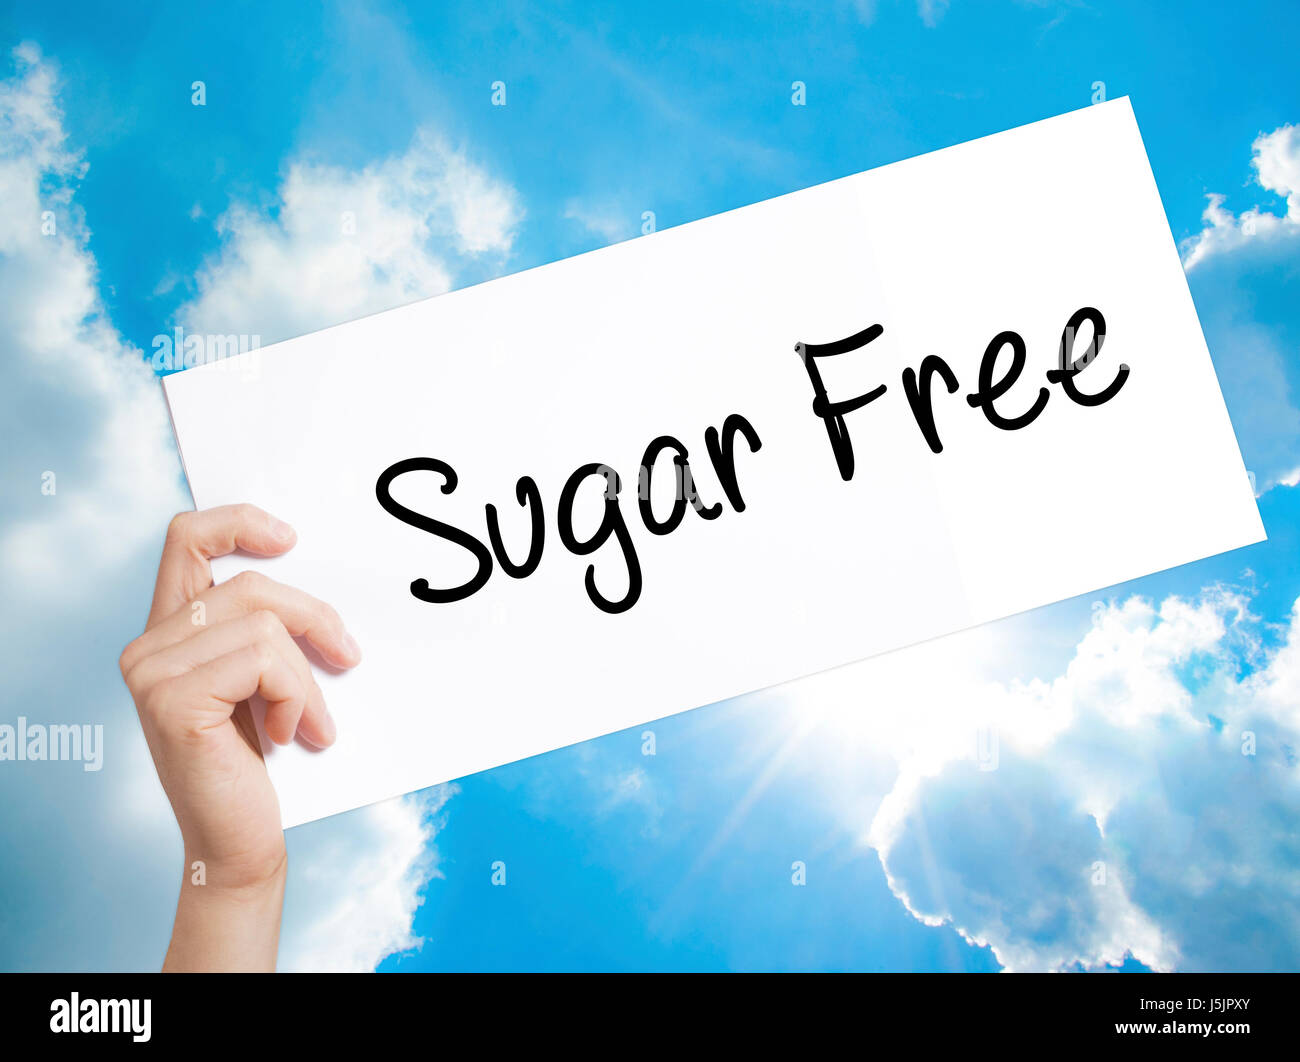 Sugar Free Sign on white paper. Man Hand Holding Paper with text. Isolated on sky background.   Business concept. - Stock Image